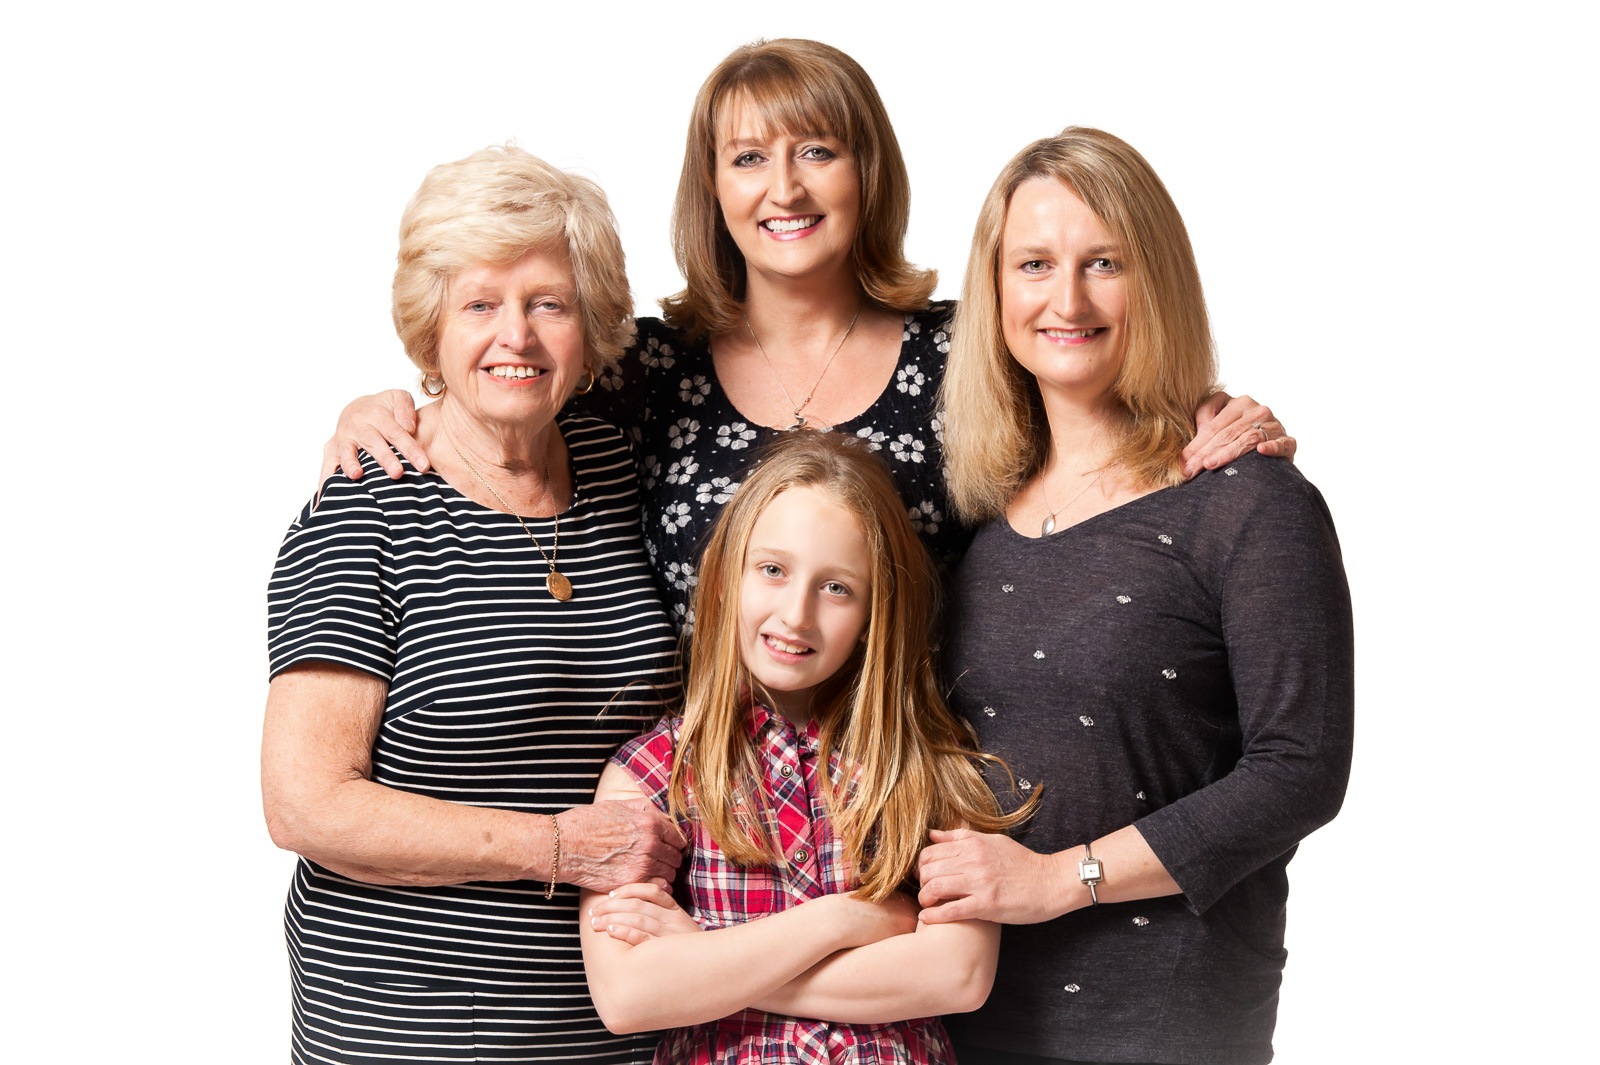 portrait photographer, portrait photography derby, Studio portrait of a family group